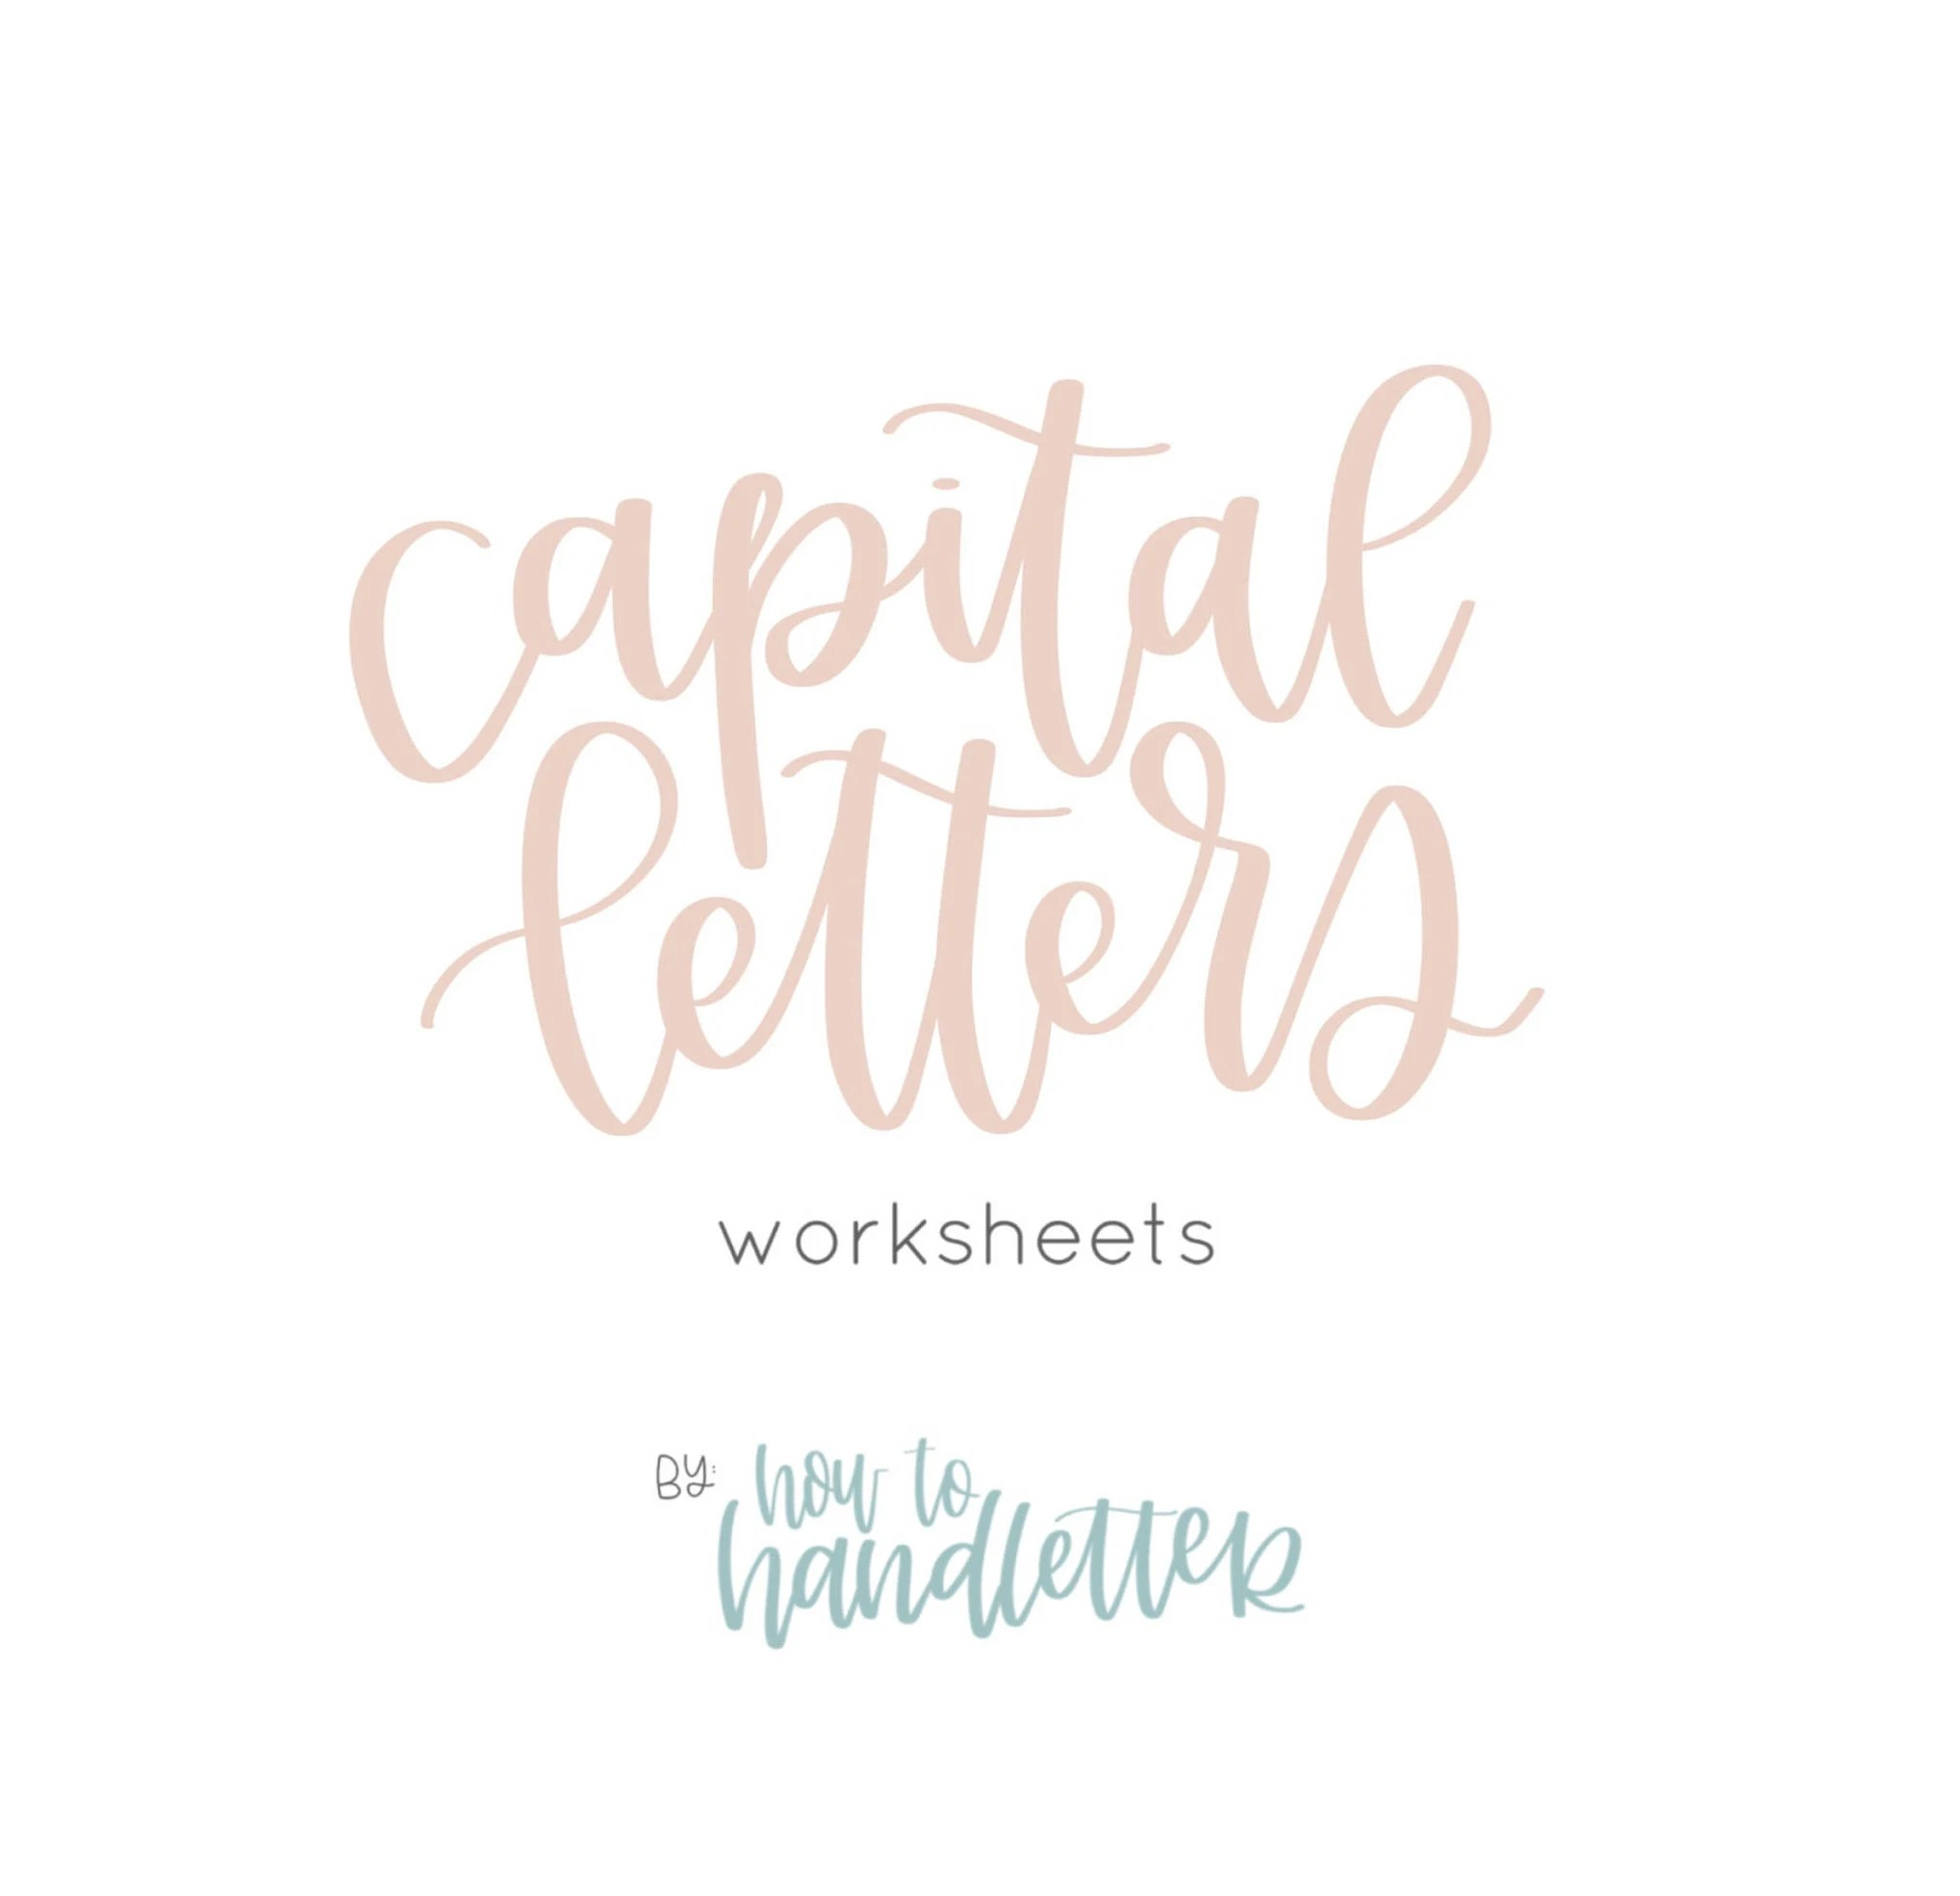 Capital Letters Handlettering Worksheets Printable Lettering